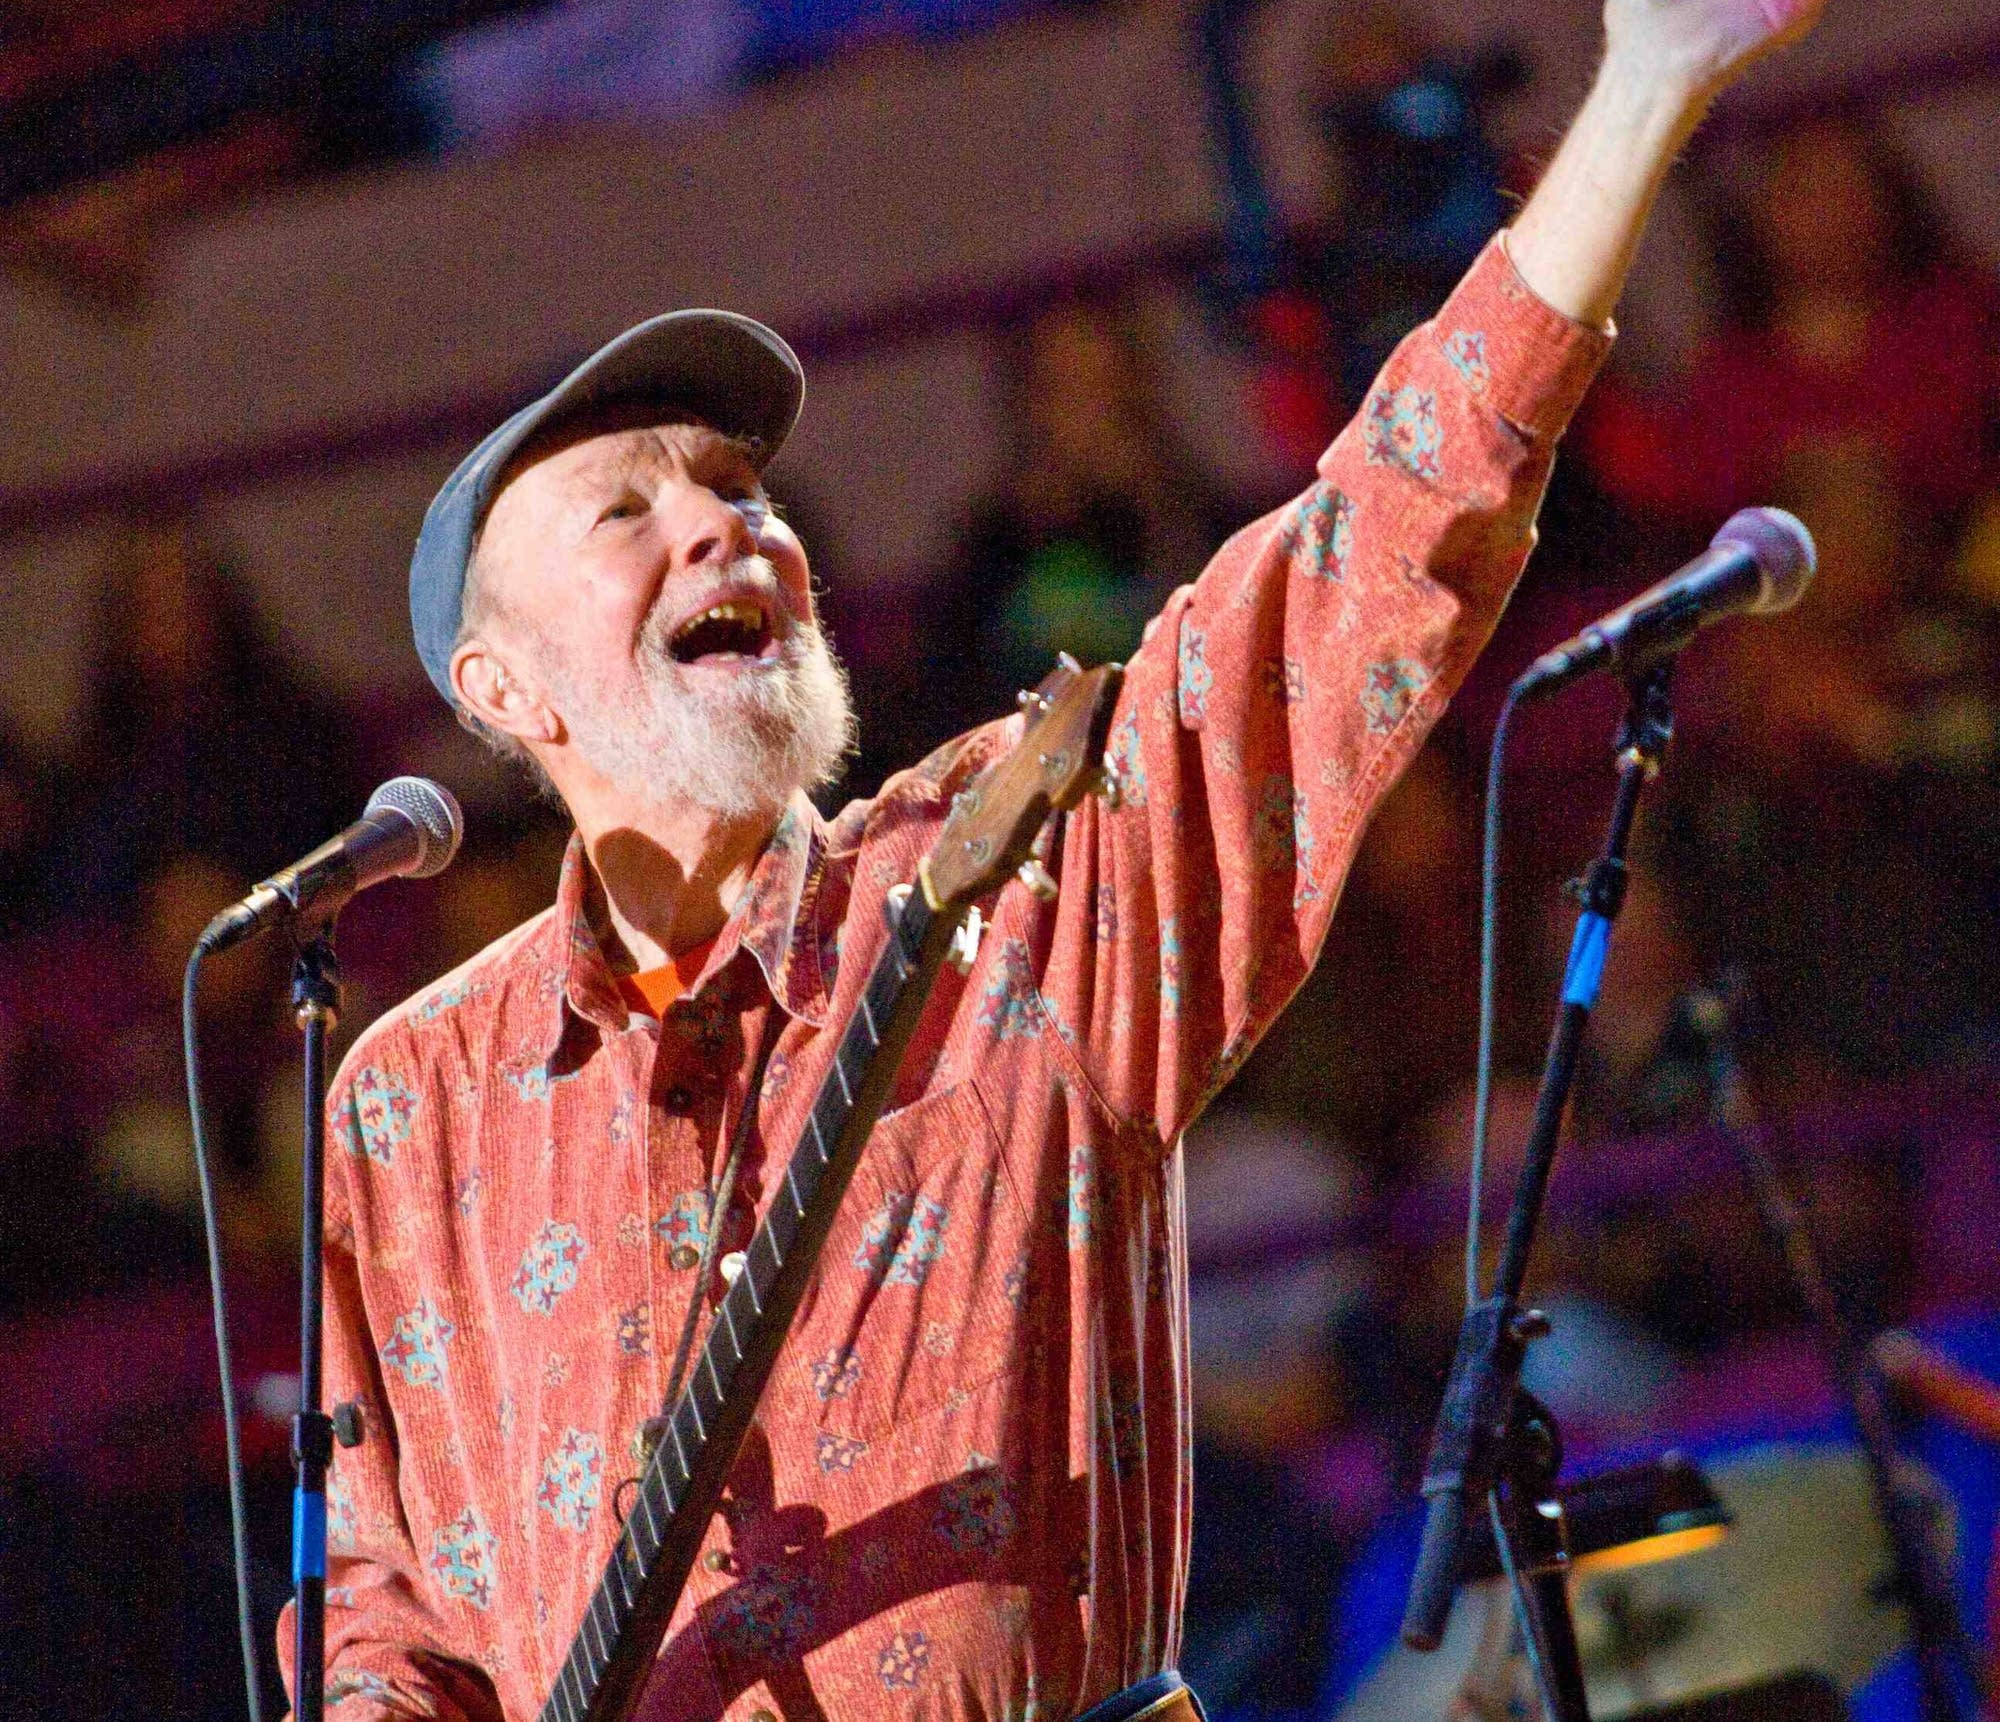 Pete Seeger performing at his 90th birthday party